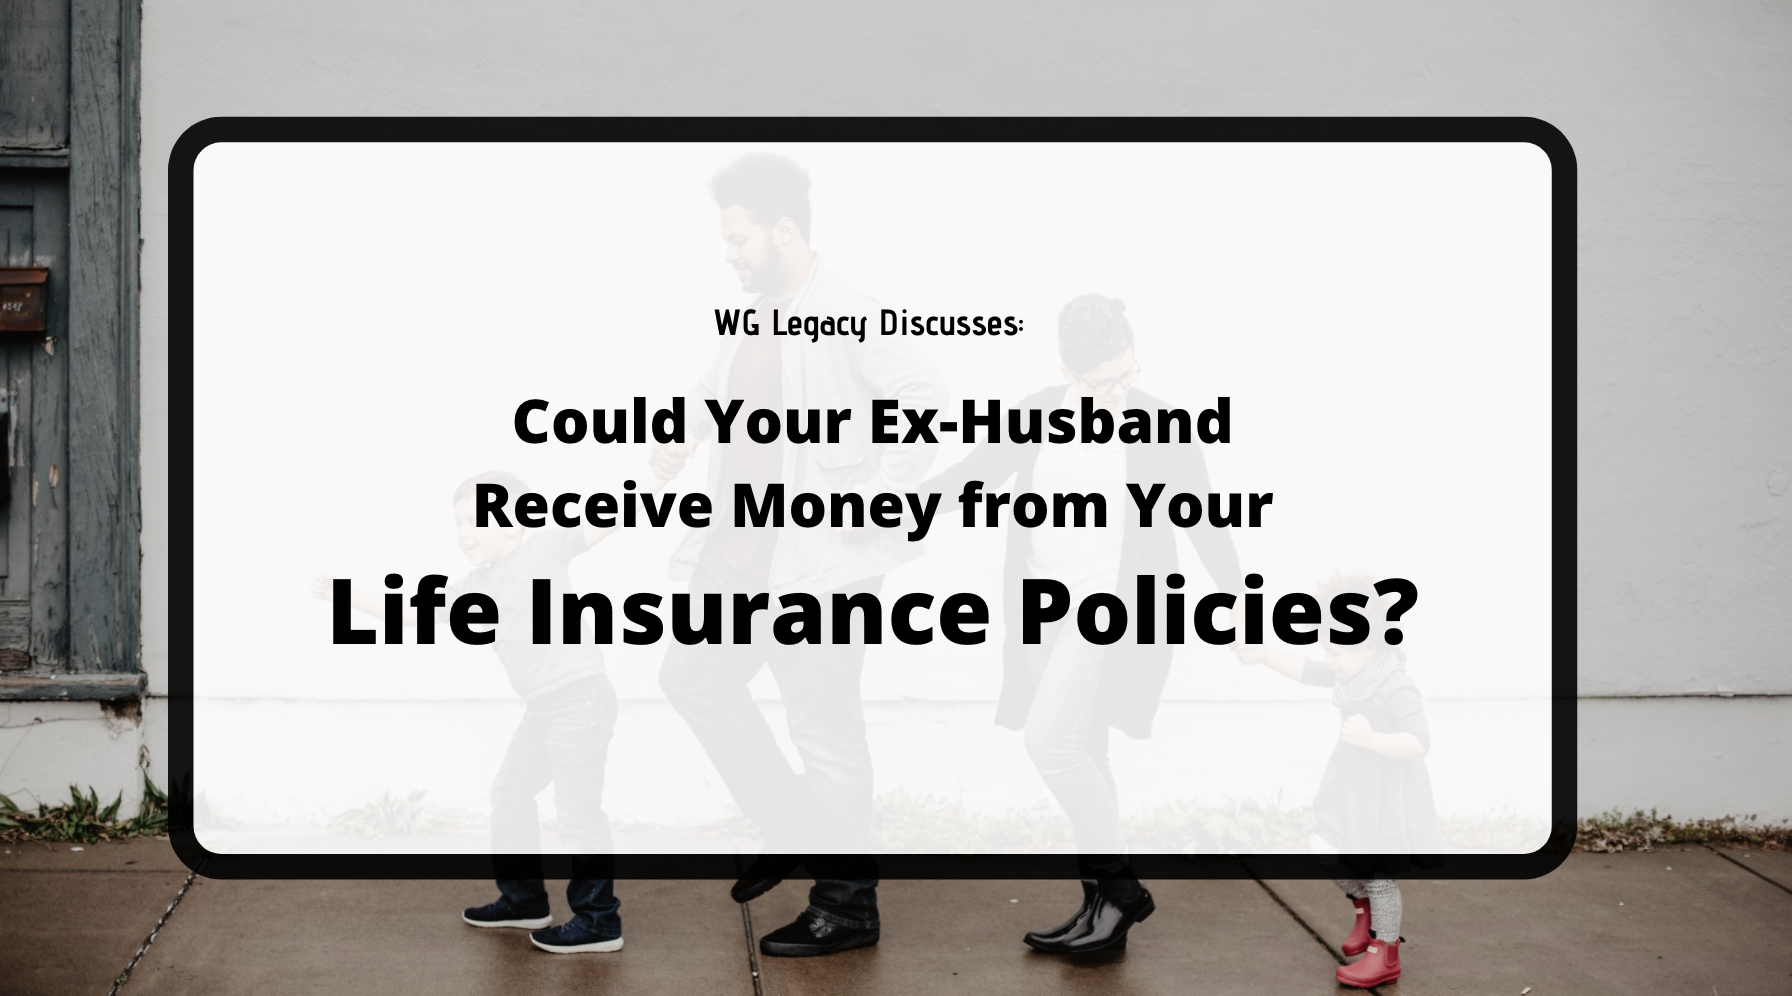 Could Your Ex-Husband Receive Money from Your Life Insurance Policies?